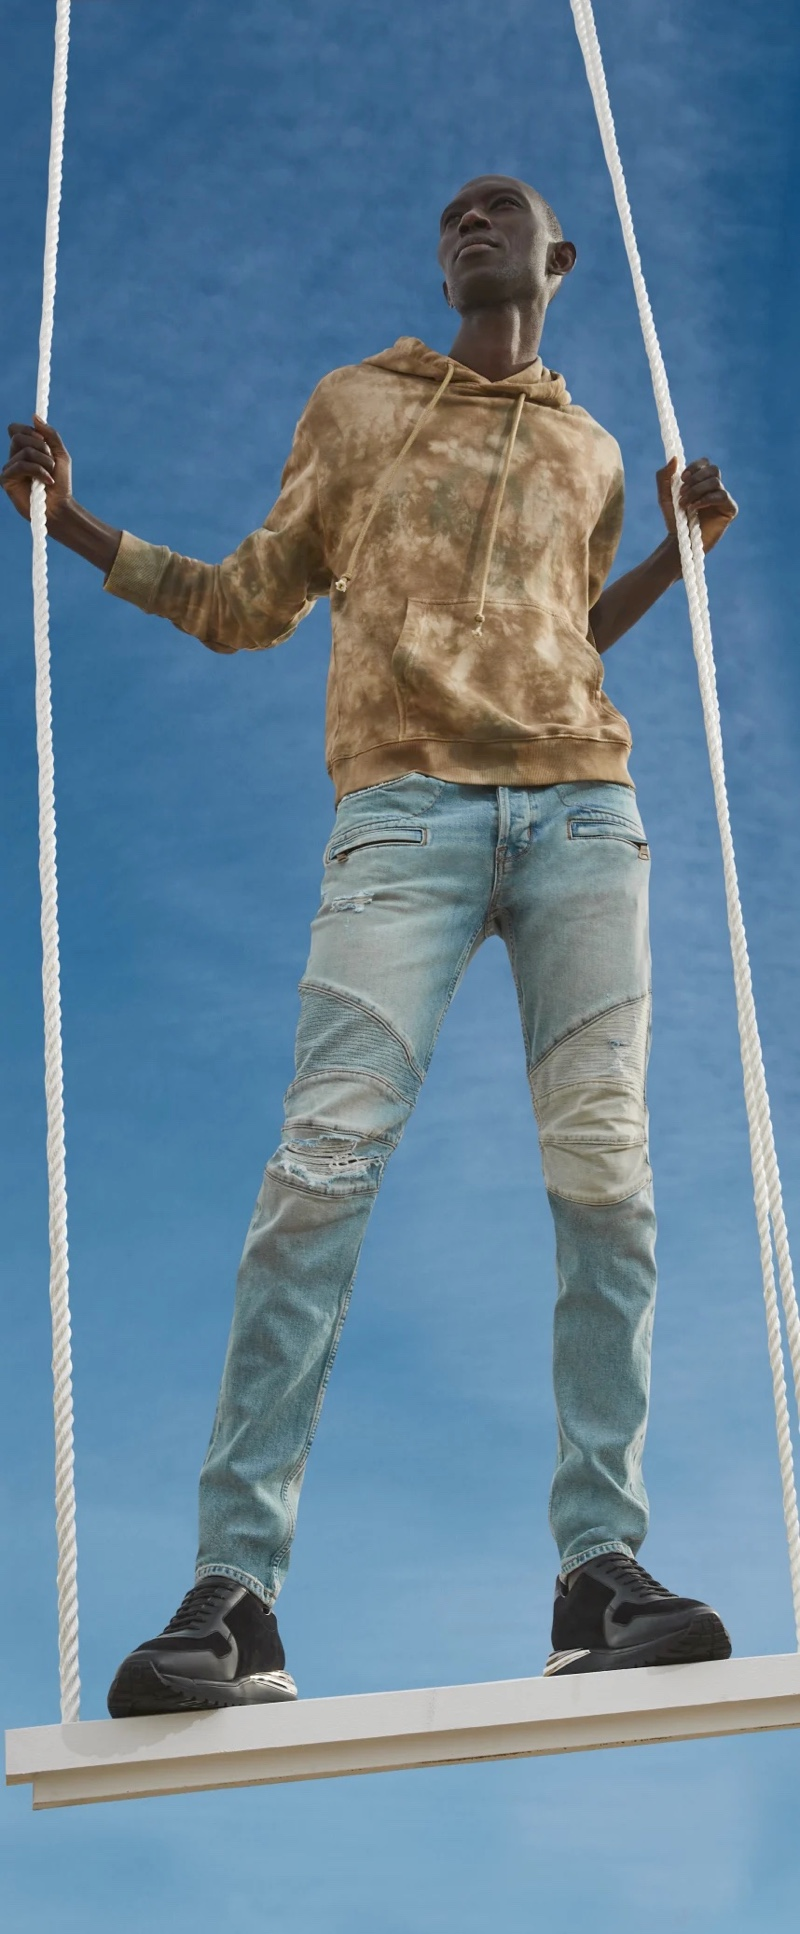 Going casual, Armando Cabral dons denim jeans with a tie-dye hoodie from Hudson Jeans.